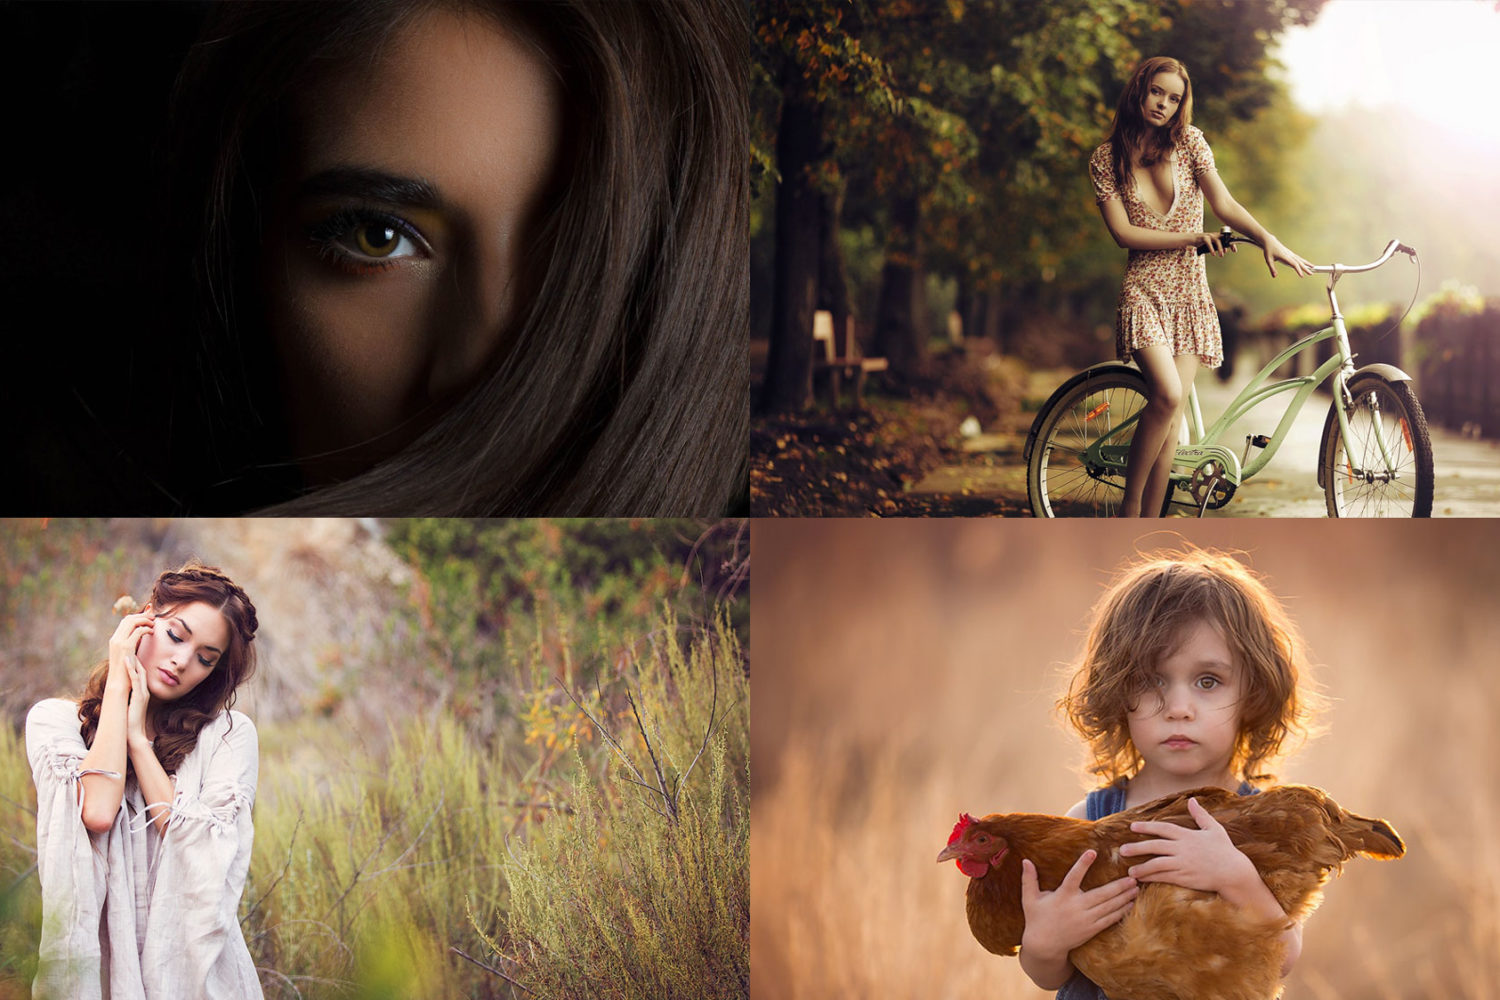 4 Fantastic Portrait Tutorials: Tips & Tricks for Better Photos